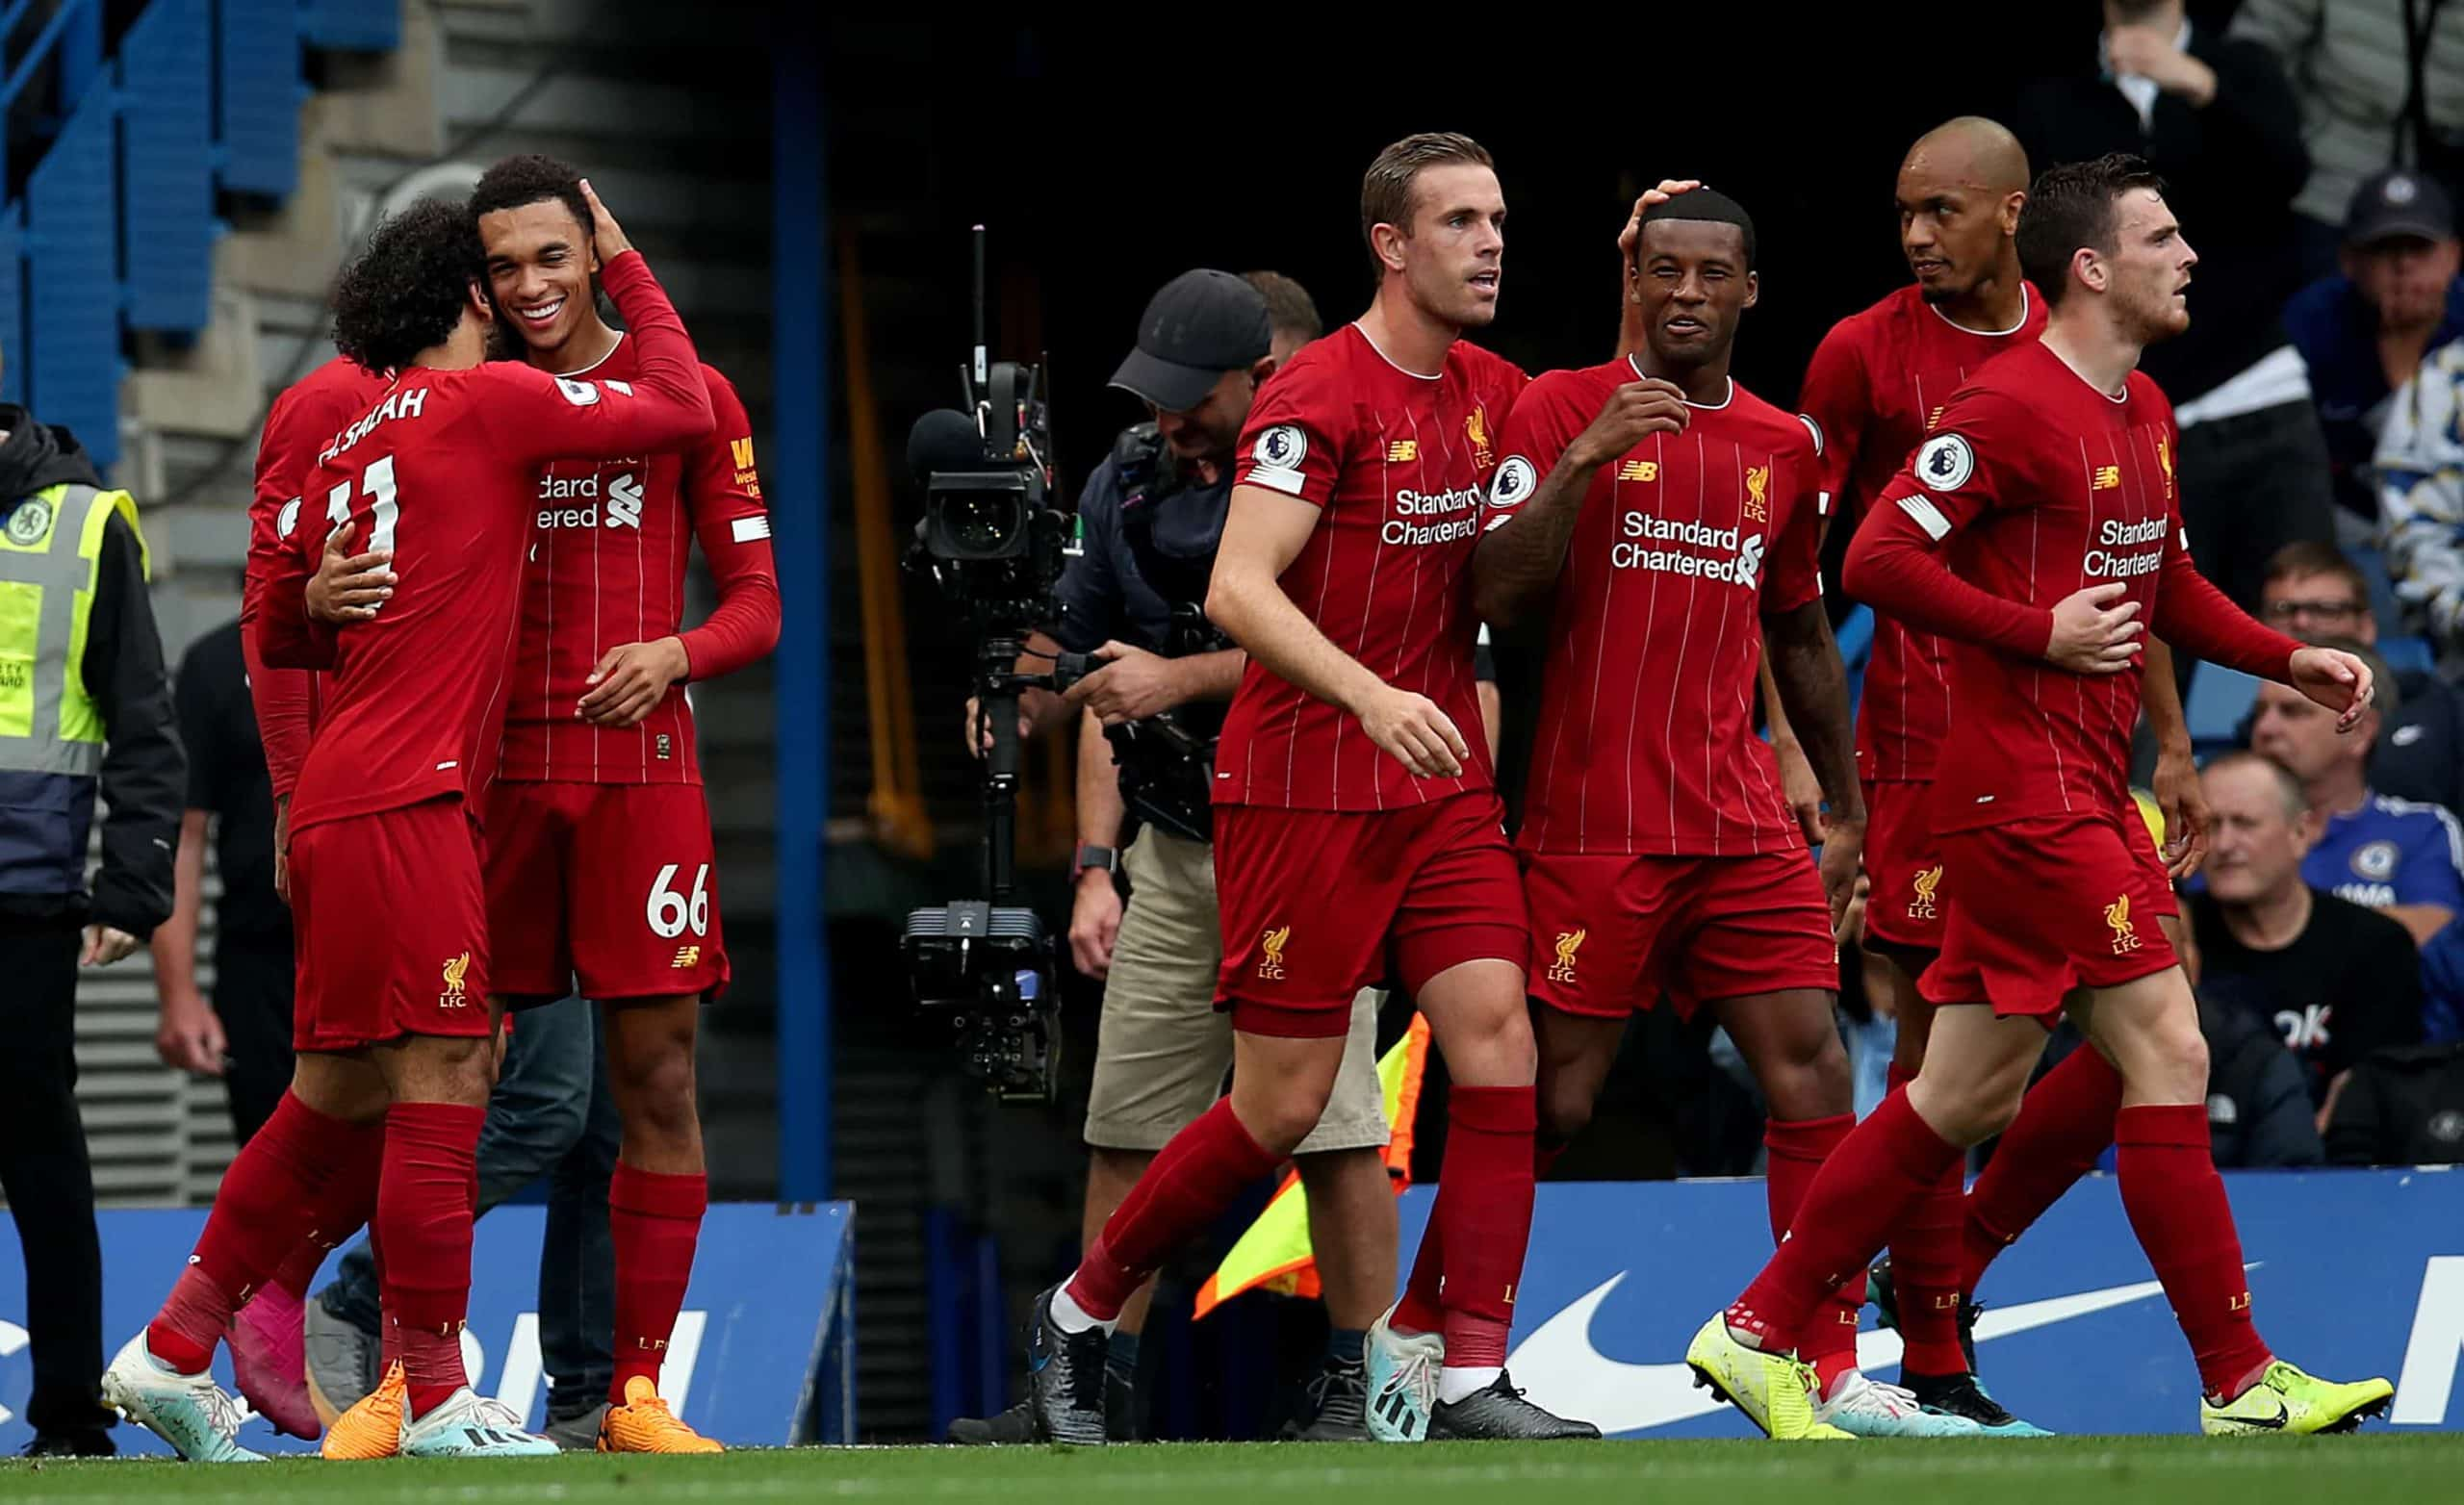 Liverpool's Trent Alexander-Arnold (second left) celebrates scoring his side's first goal of the game (PA Images)